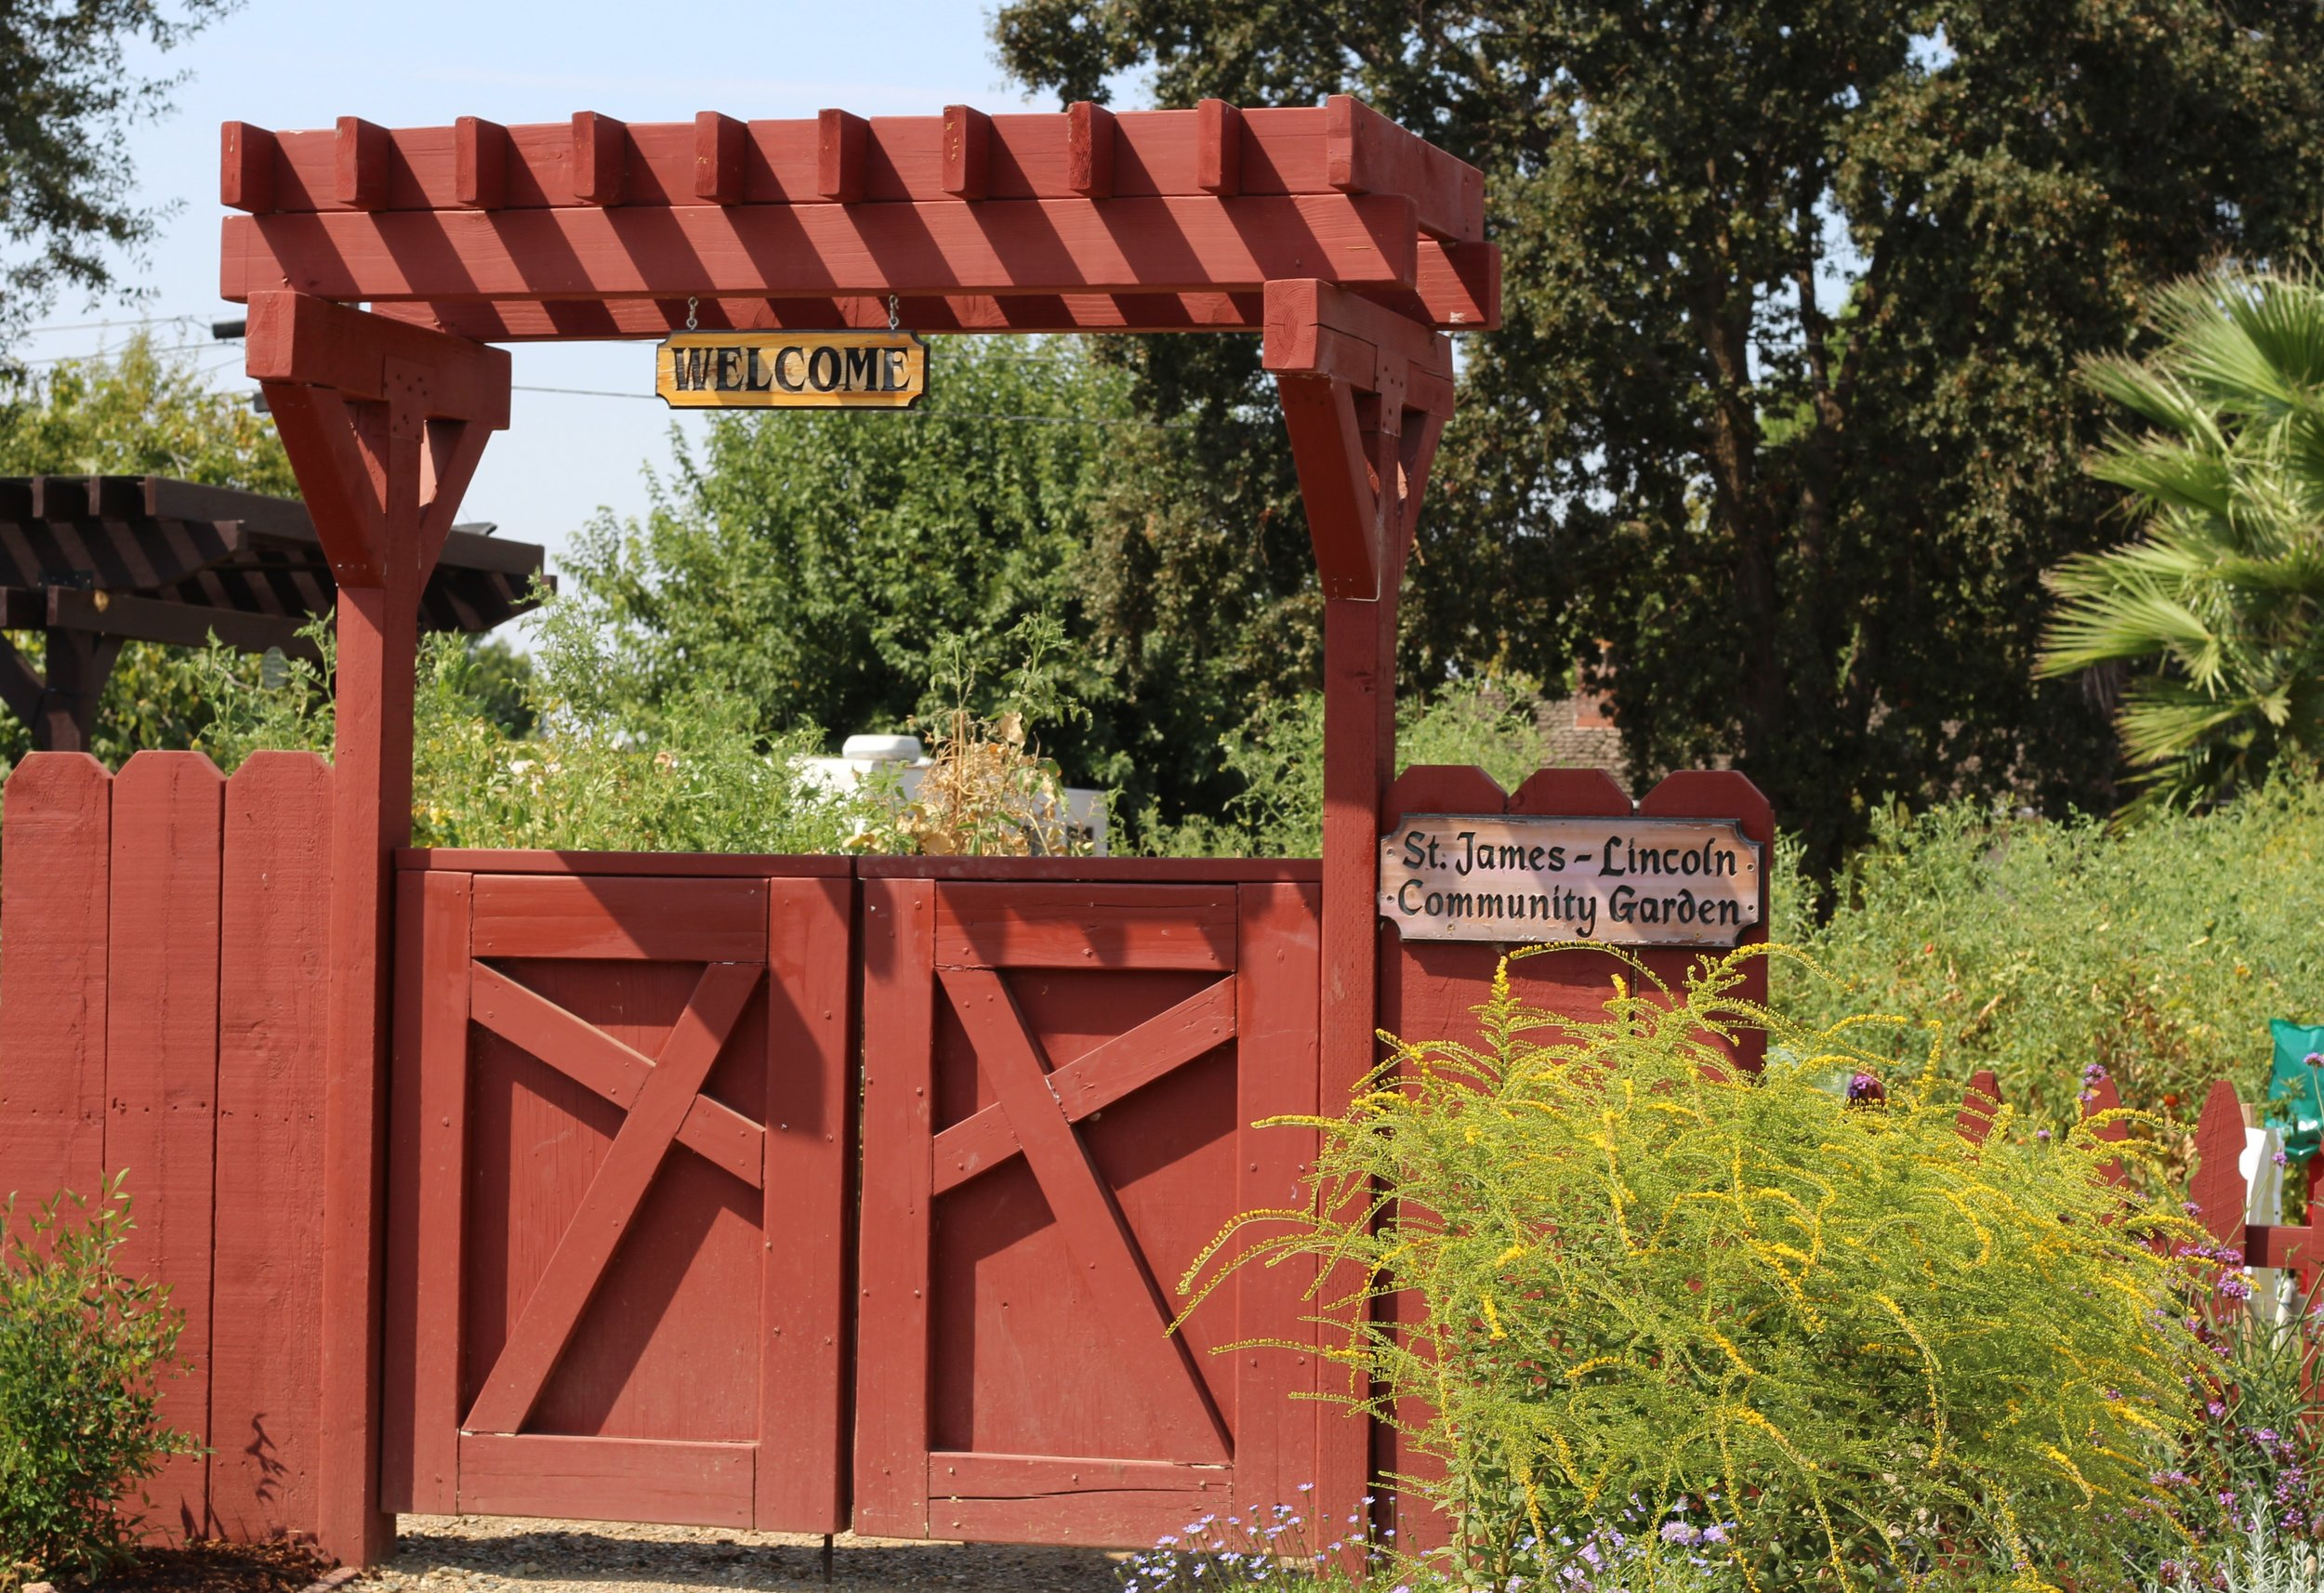 St. James Community Garden Welcomes All